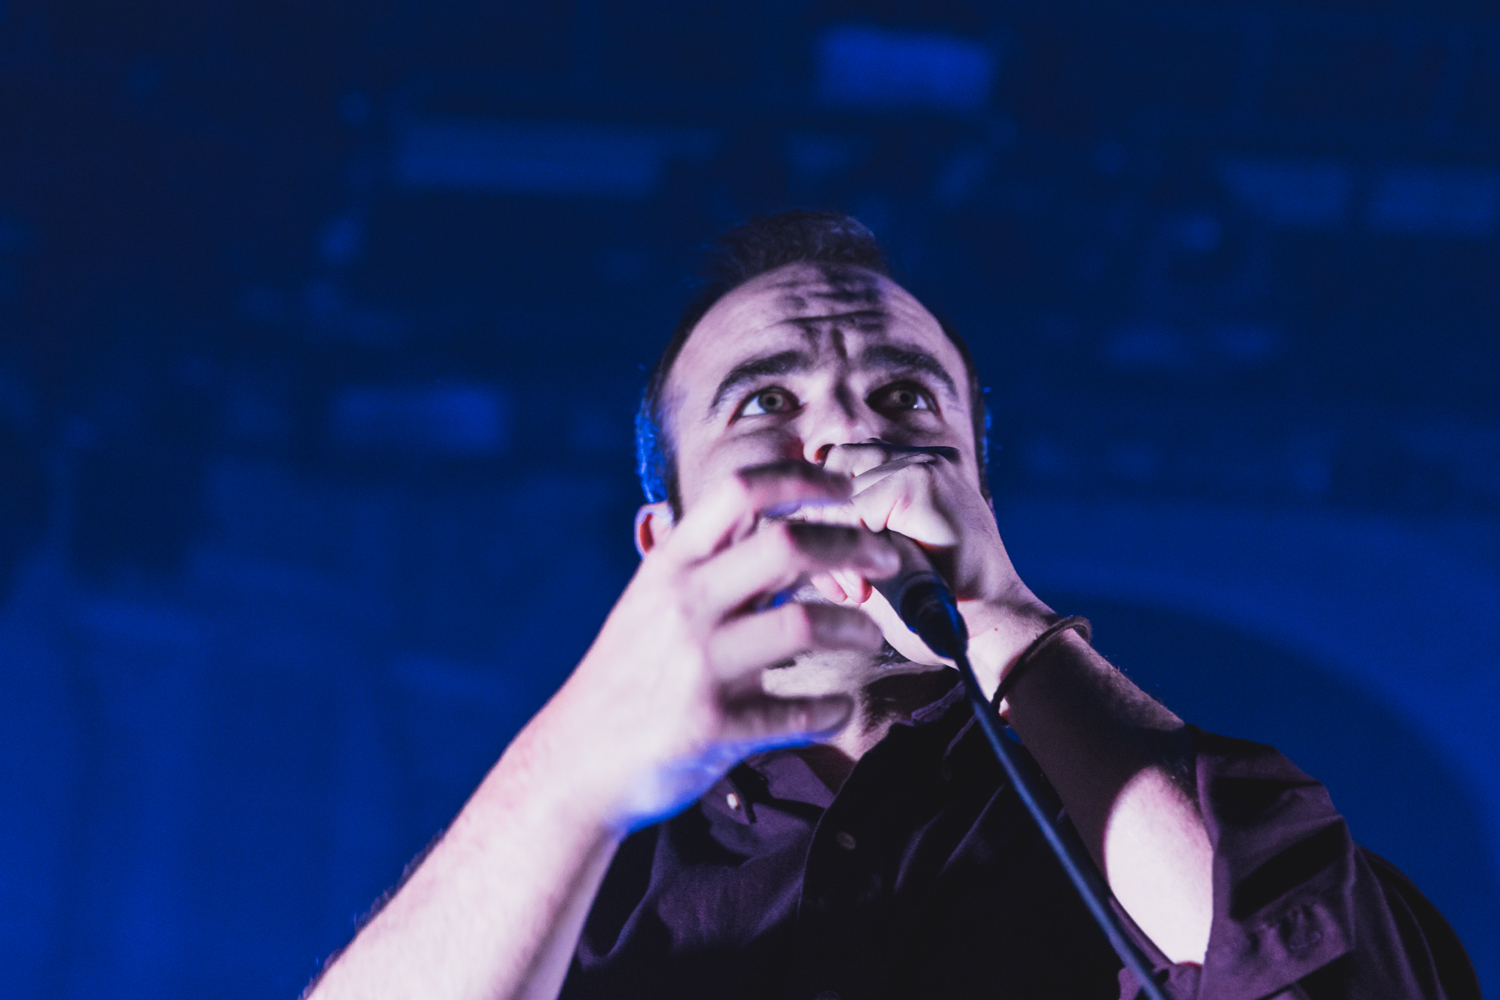 Future Islands at Paradiso in Amsterdam by Ian Young 11.jpg